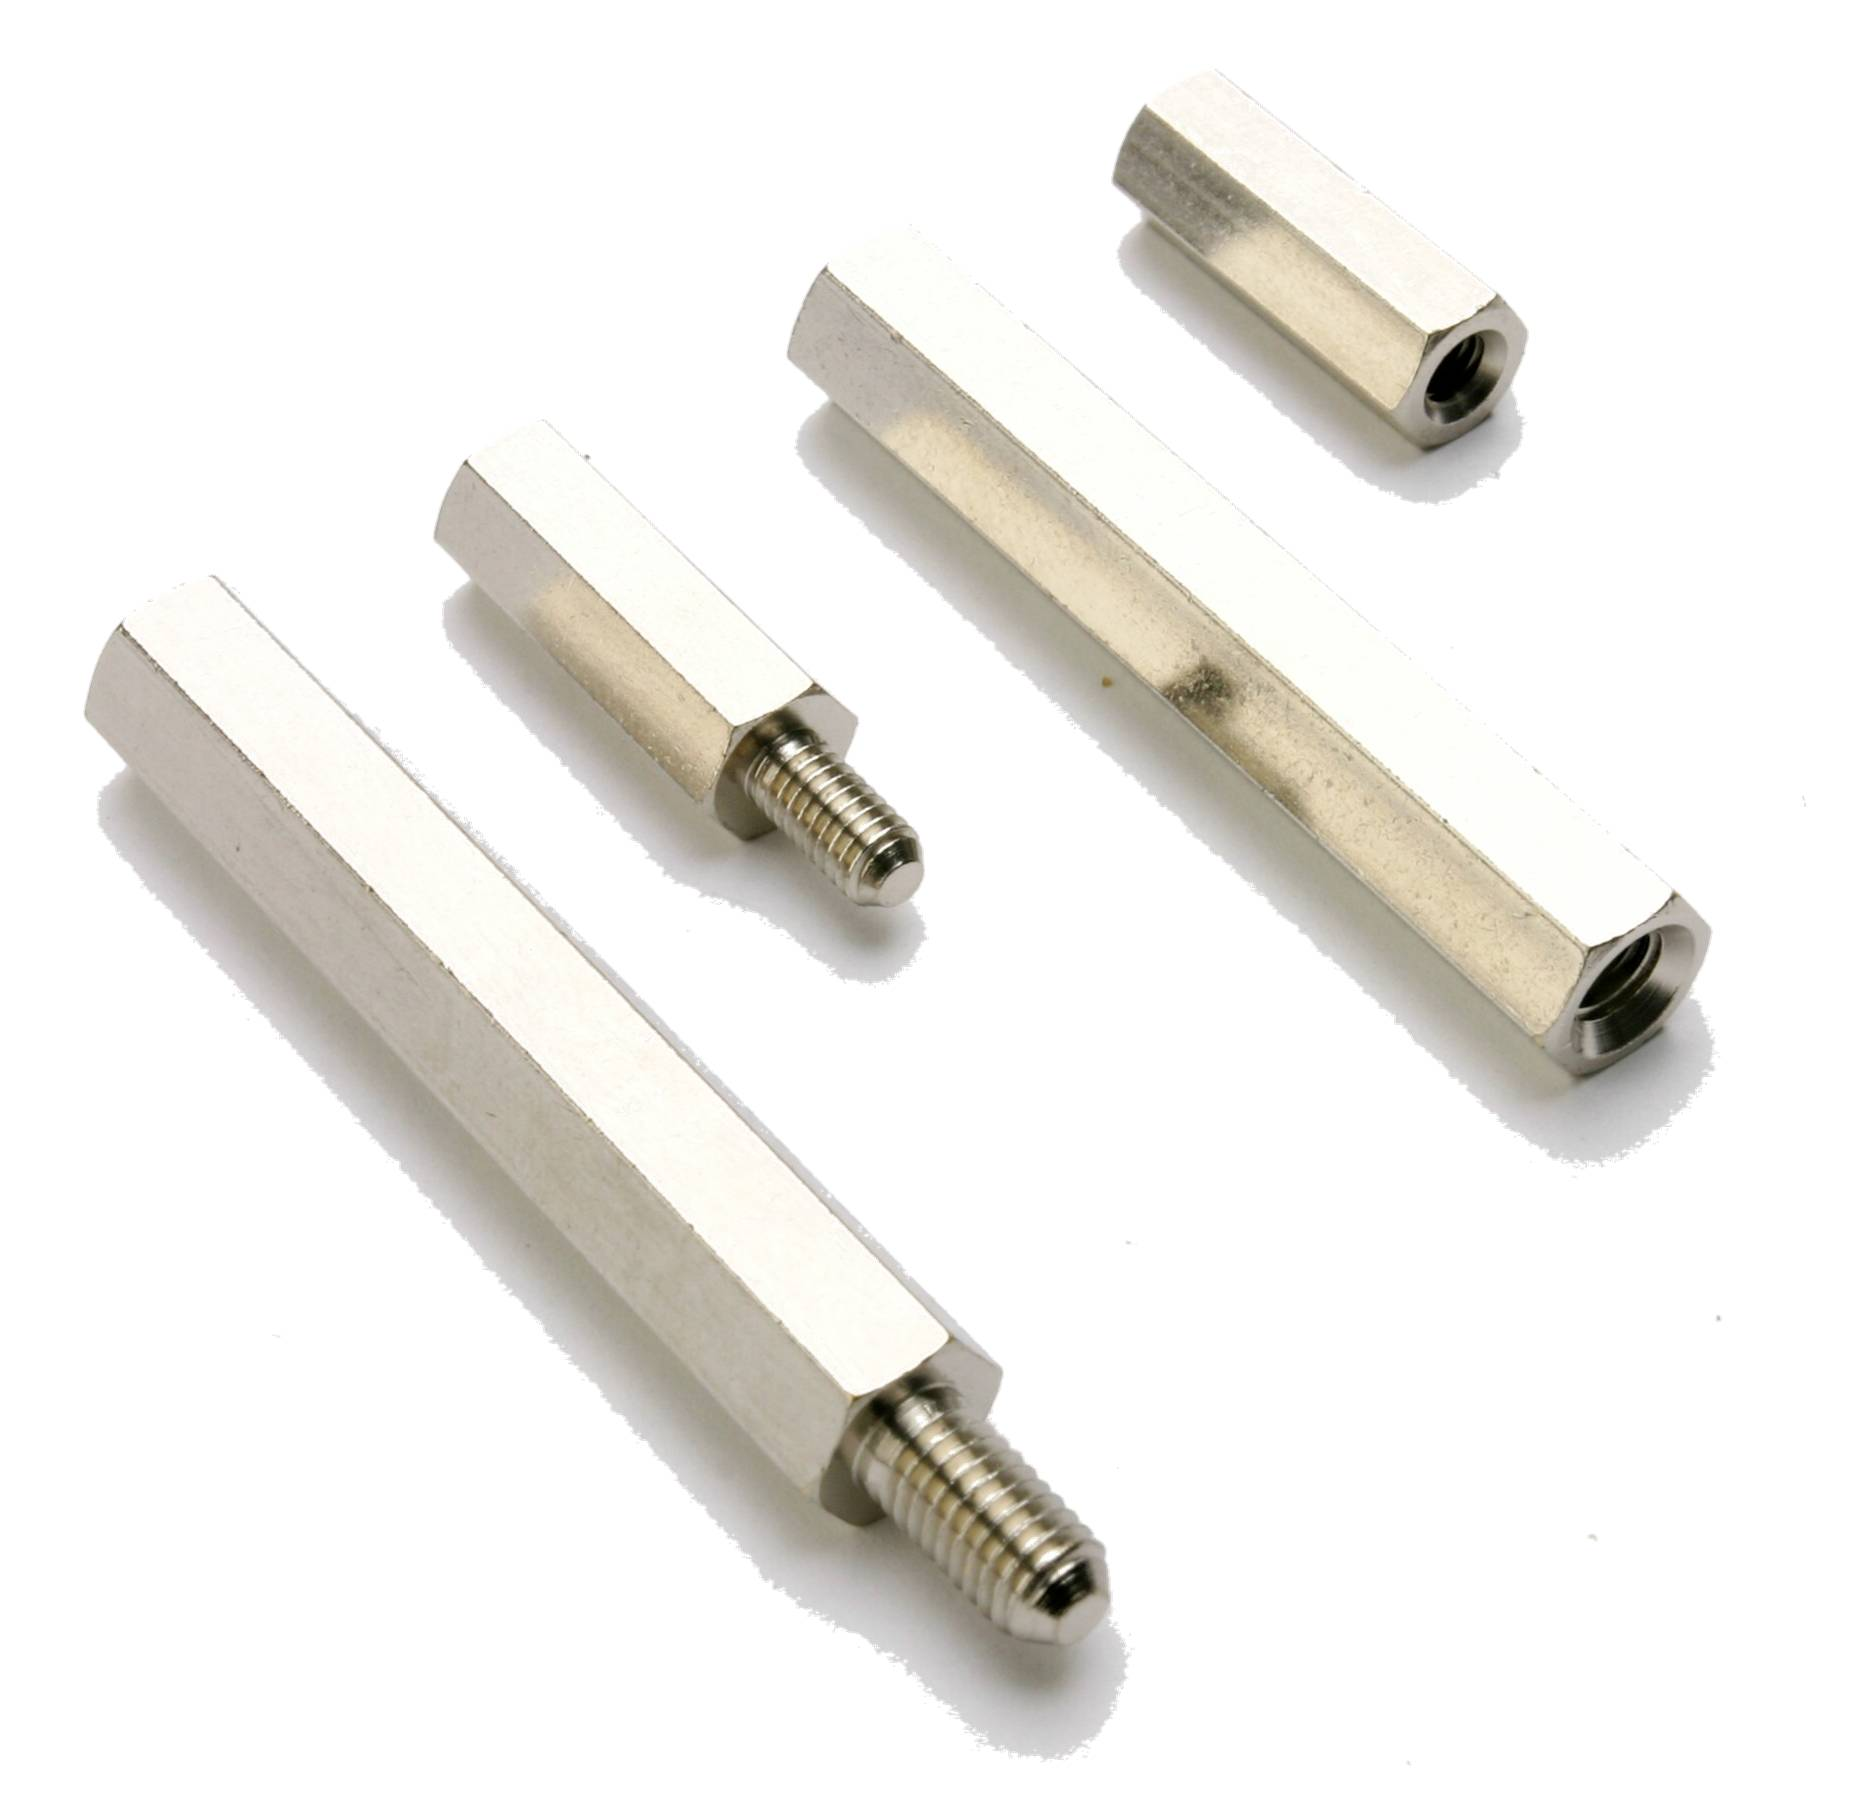 Hex Threaded Spacers